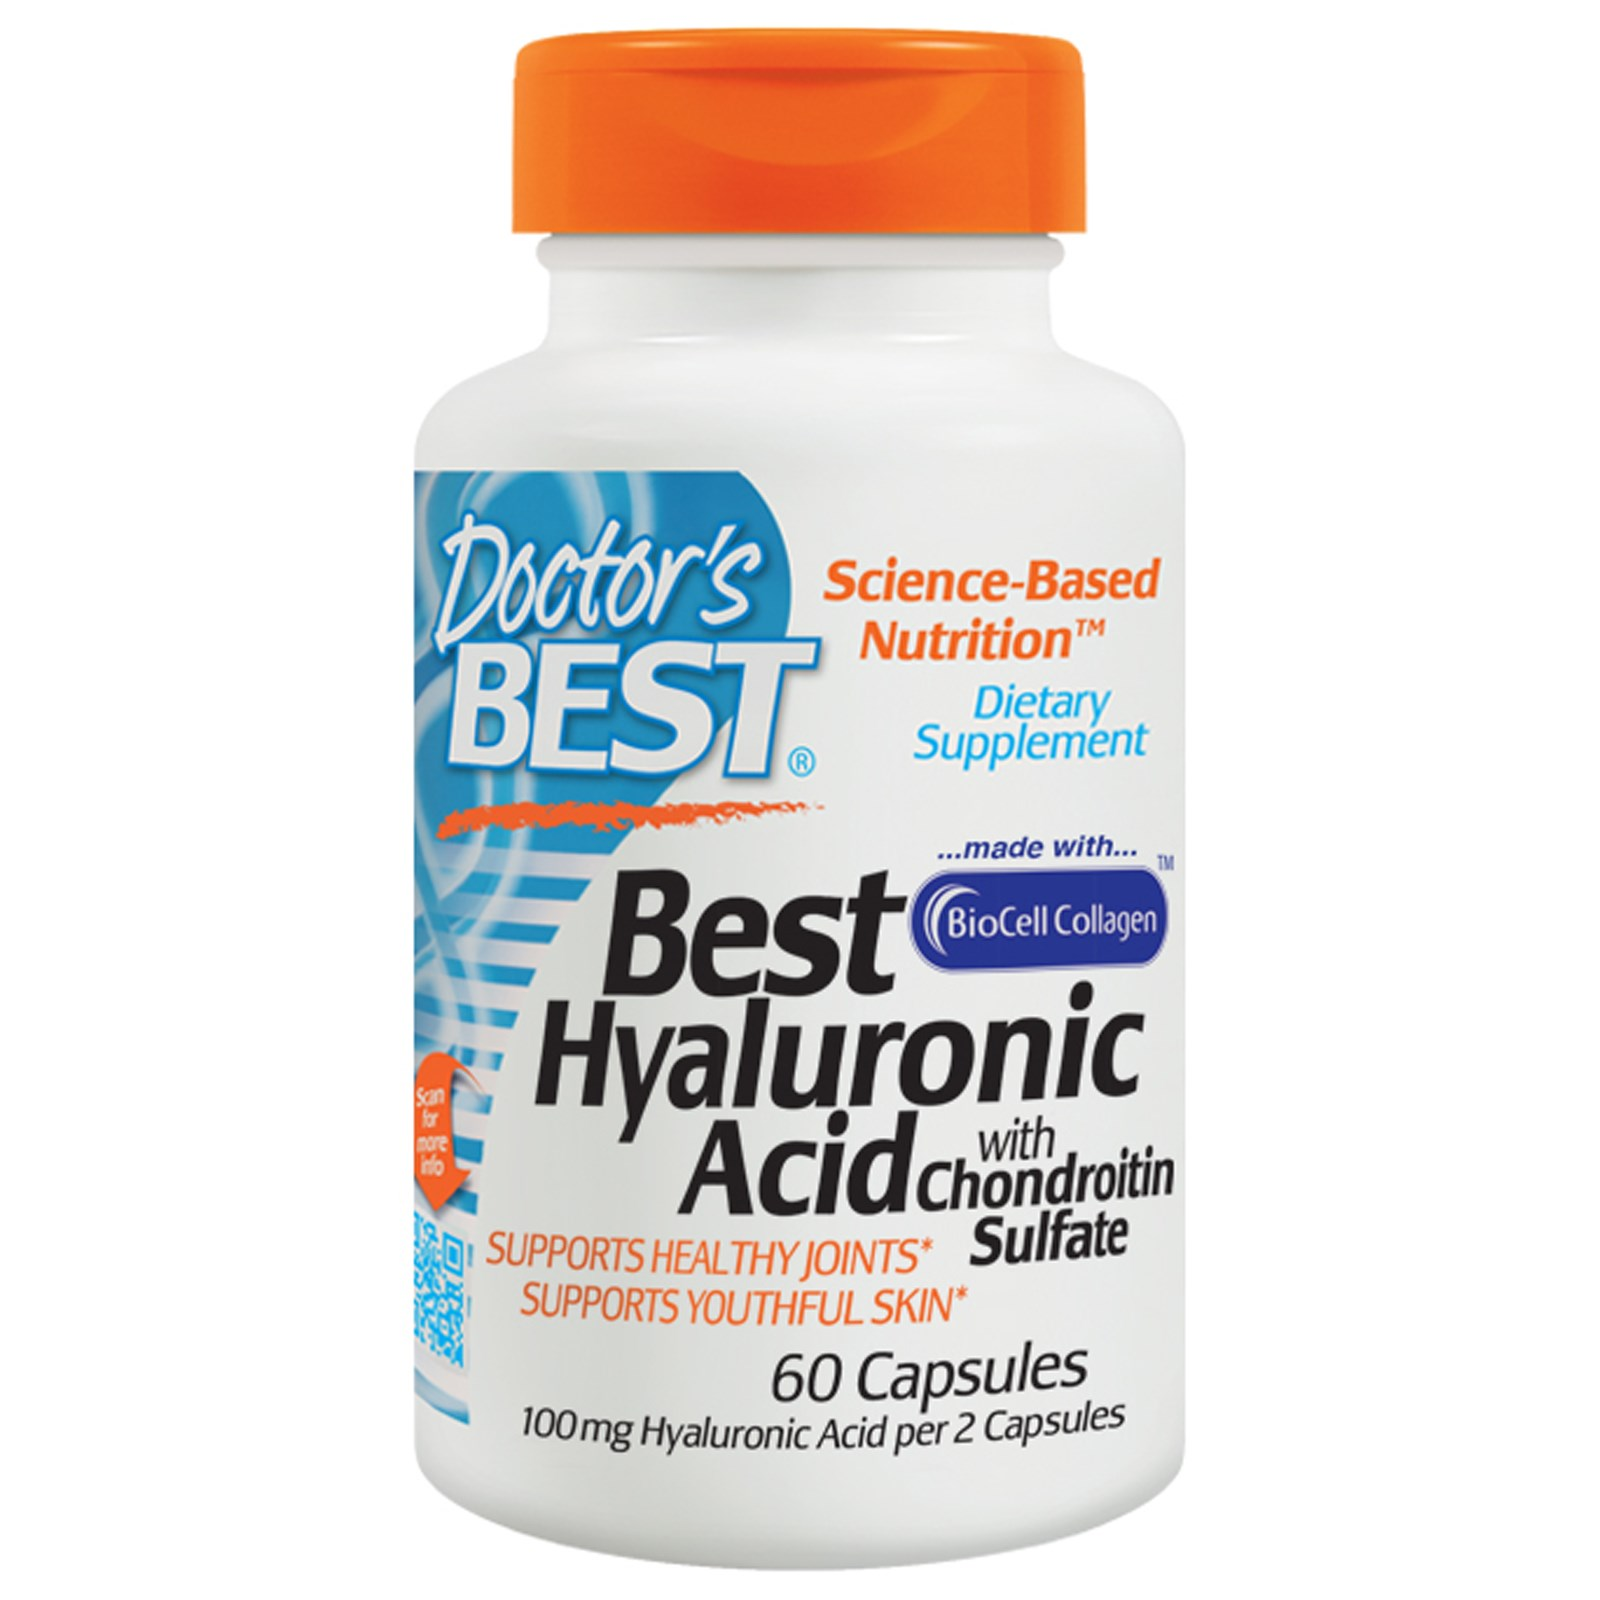 Doctor's Best, Hyaluronic Acid + Chondroitin Sulfate, в капсулах (60 штук)